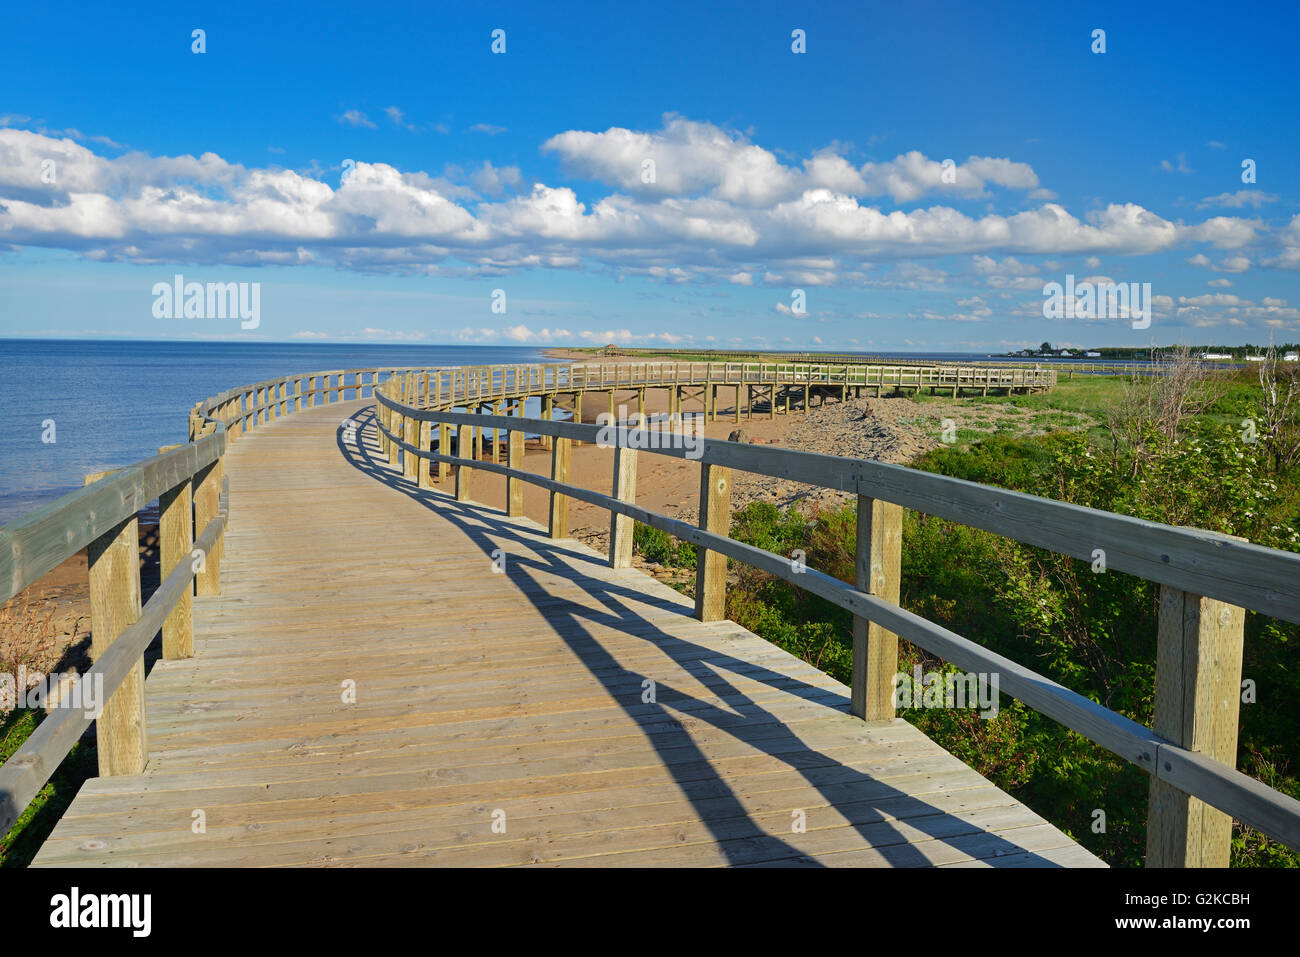 Boardwalk along the dunes adjacent the saltwater beach at the Irving Eco-centre  Bouctouche New Brunswick Canada - Stock Image